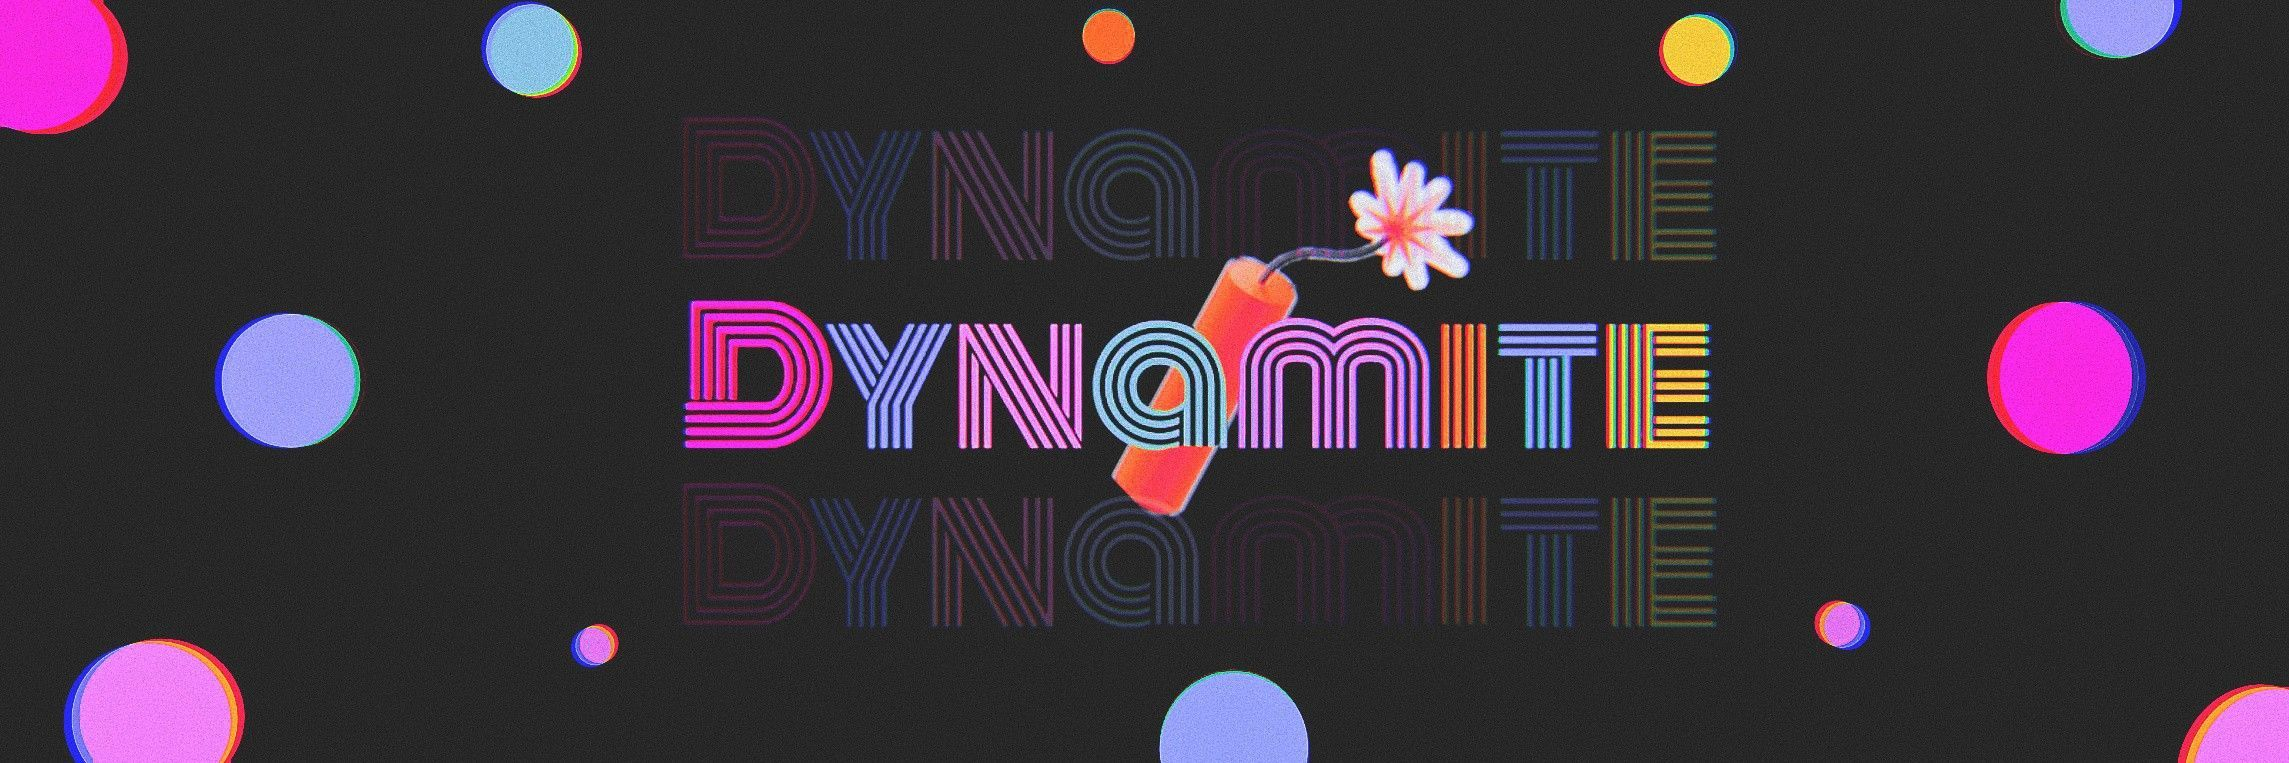 Bts Dynamite For Laptop Wallpapers Wallpaper Cave